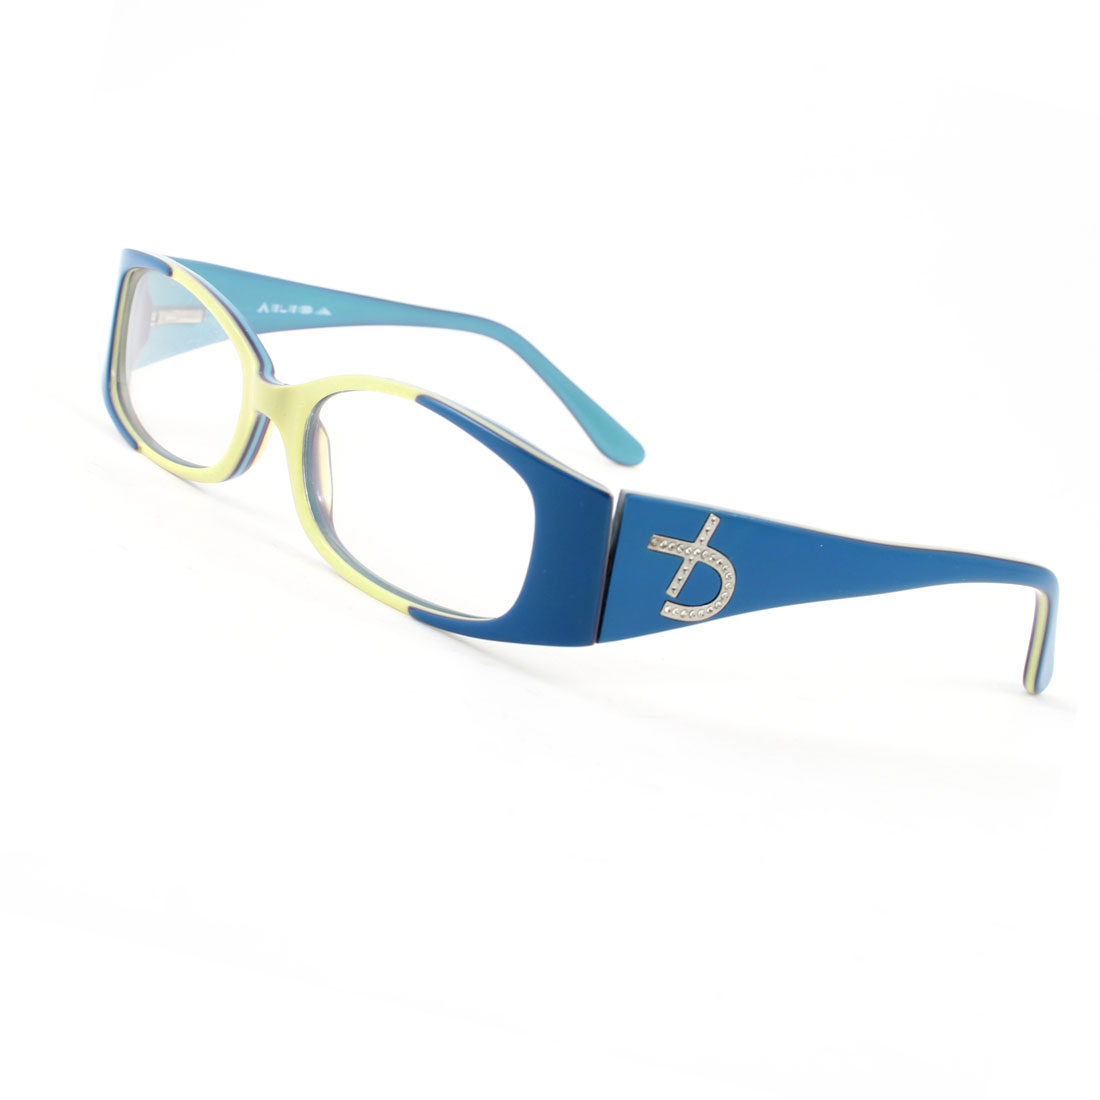 Plastic Single Bridge Clear Lens Plano Glasses Blue Yellow for Ladies Woman